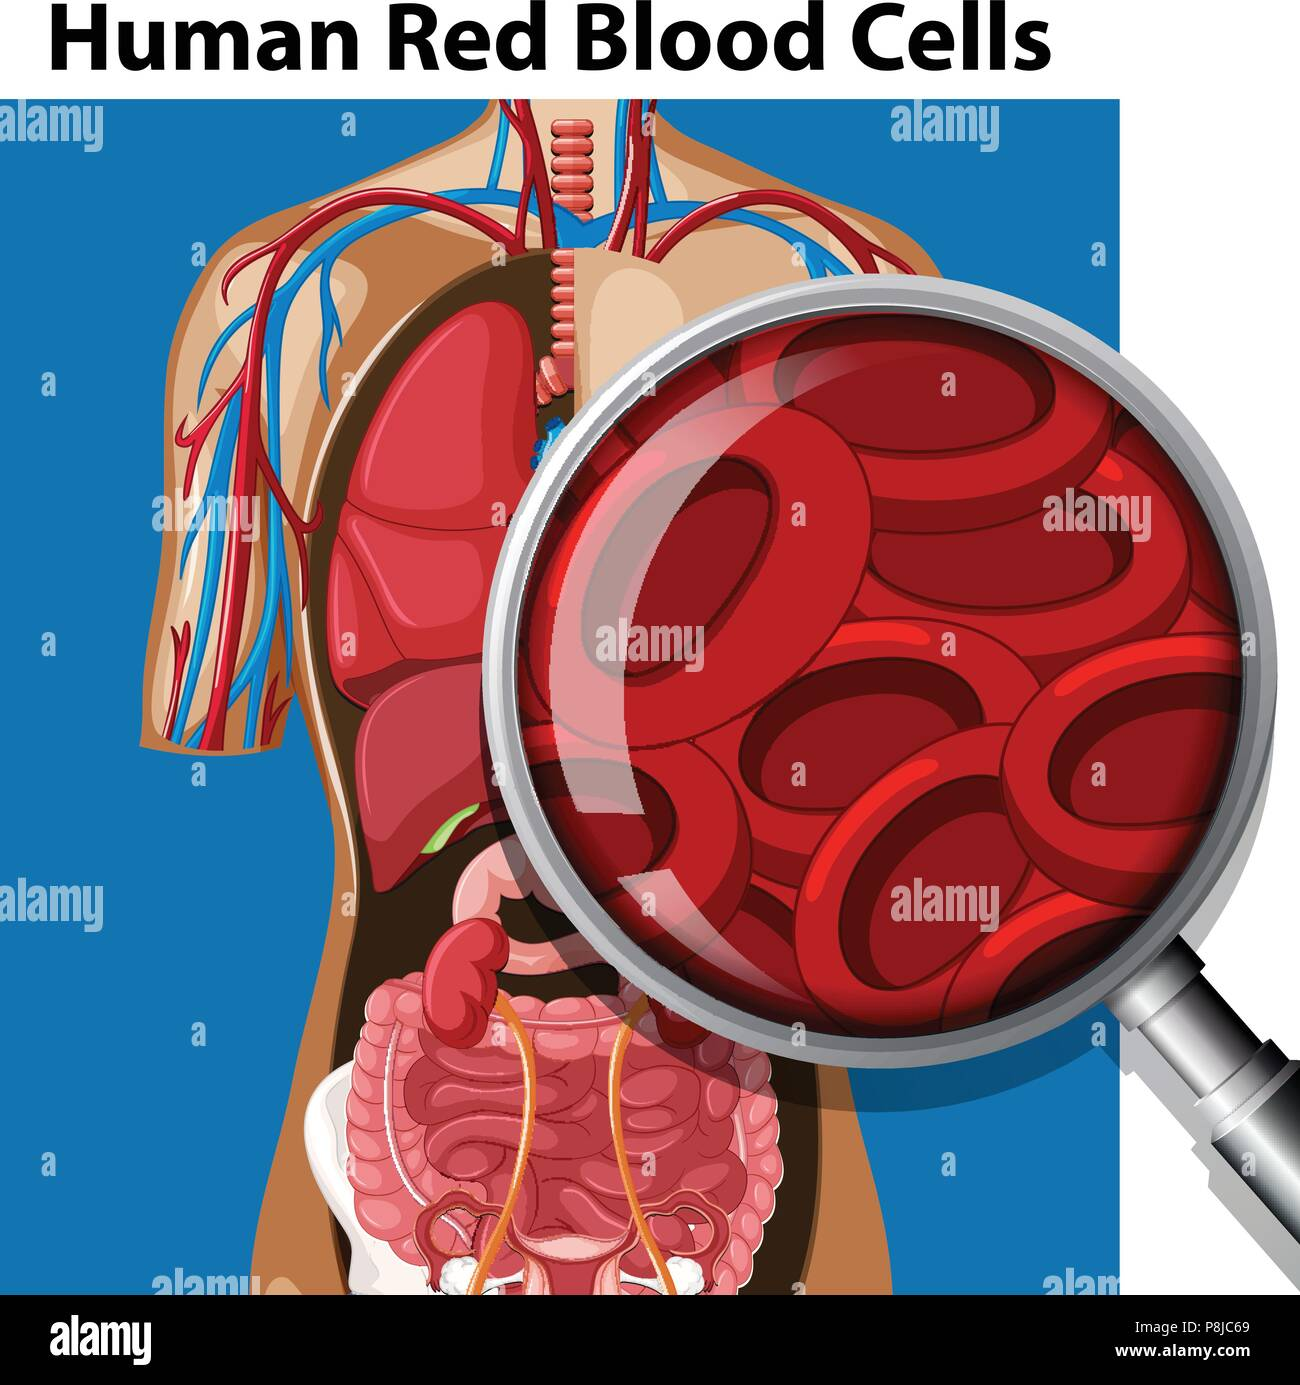 Anatomy Of Human Red Blood Cells Illustration Stock Vector Art